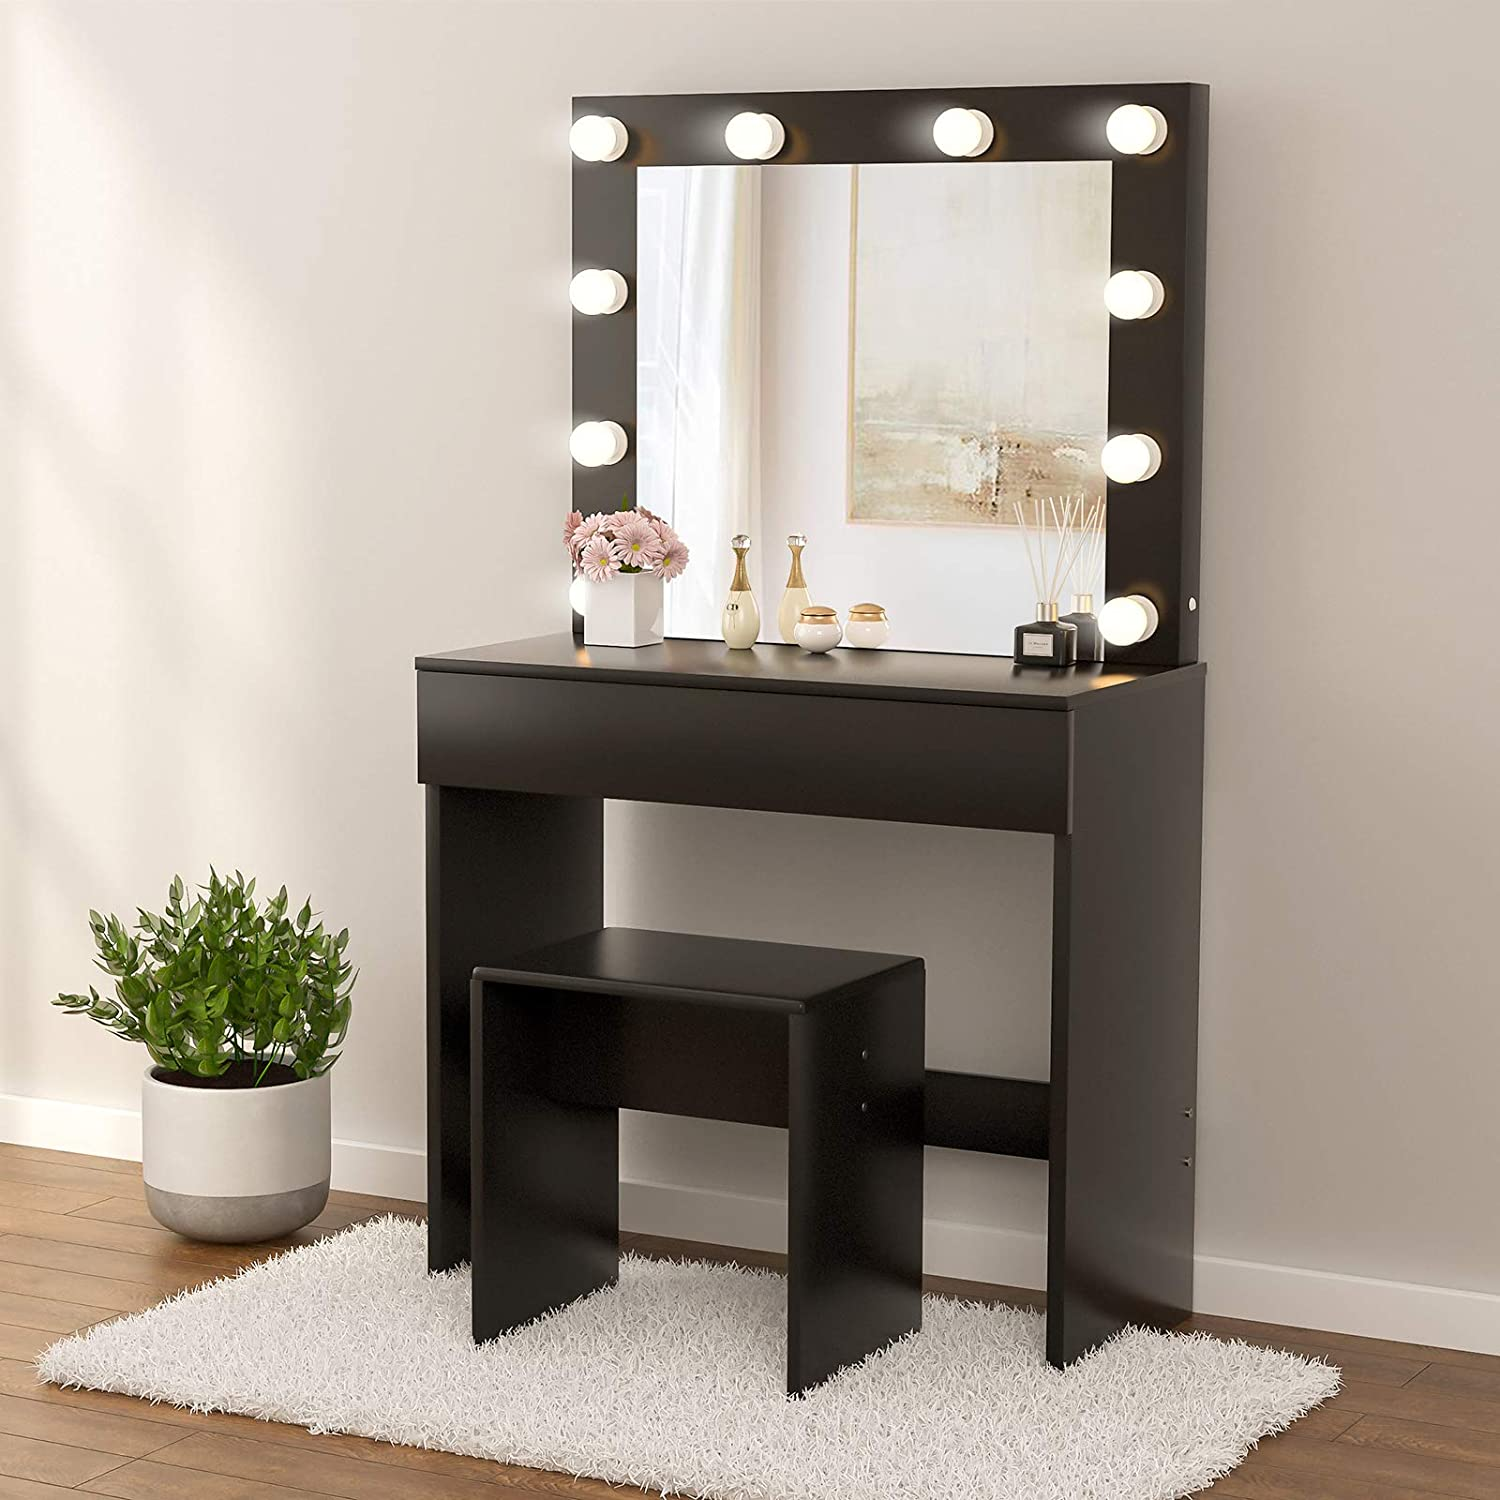 Mecor Makeup Vanity Table Set w/10 LED Lights Mirror, Vanity Table with Stool & Drawer, Wood Dressing Table Bedroom Furniture, for Girls Women Gifts - Black